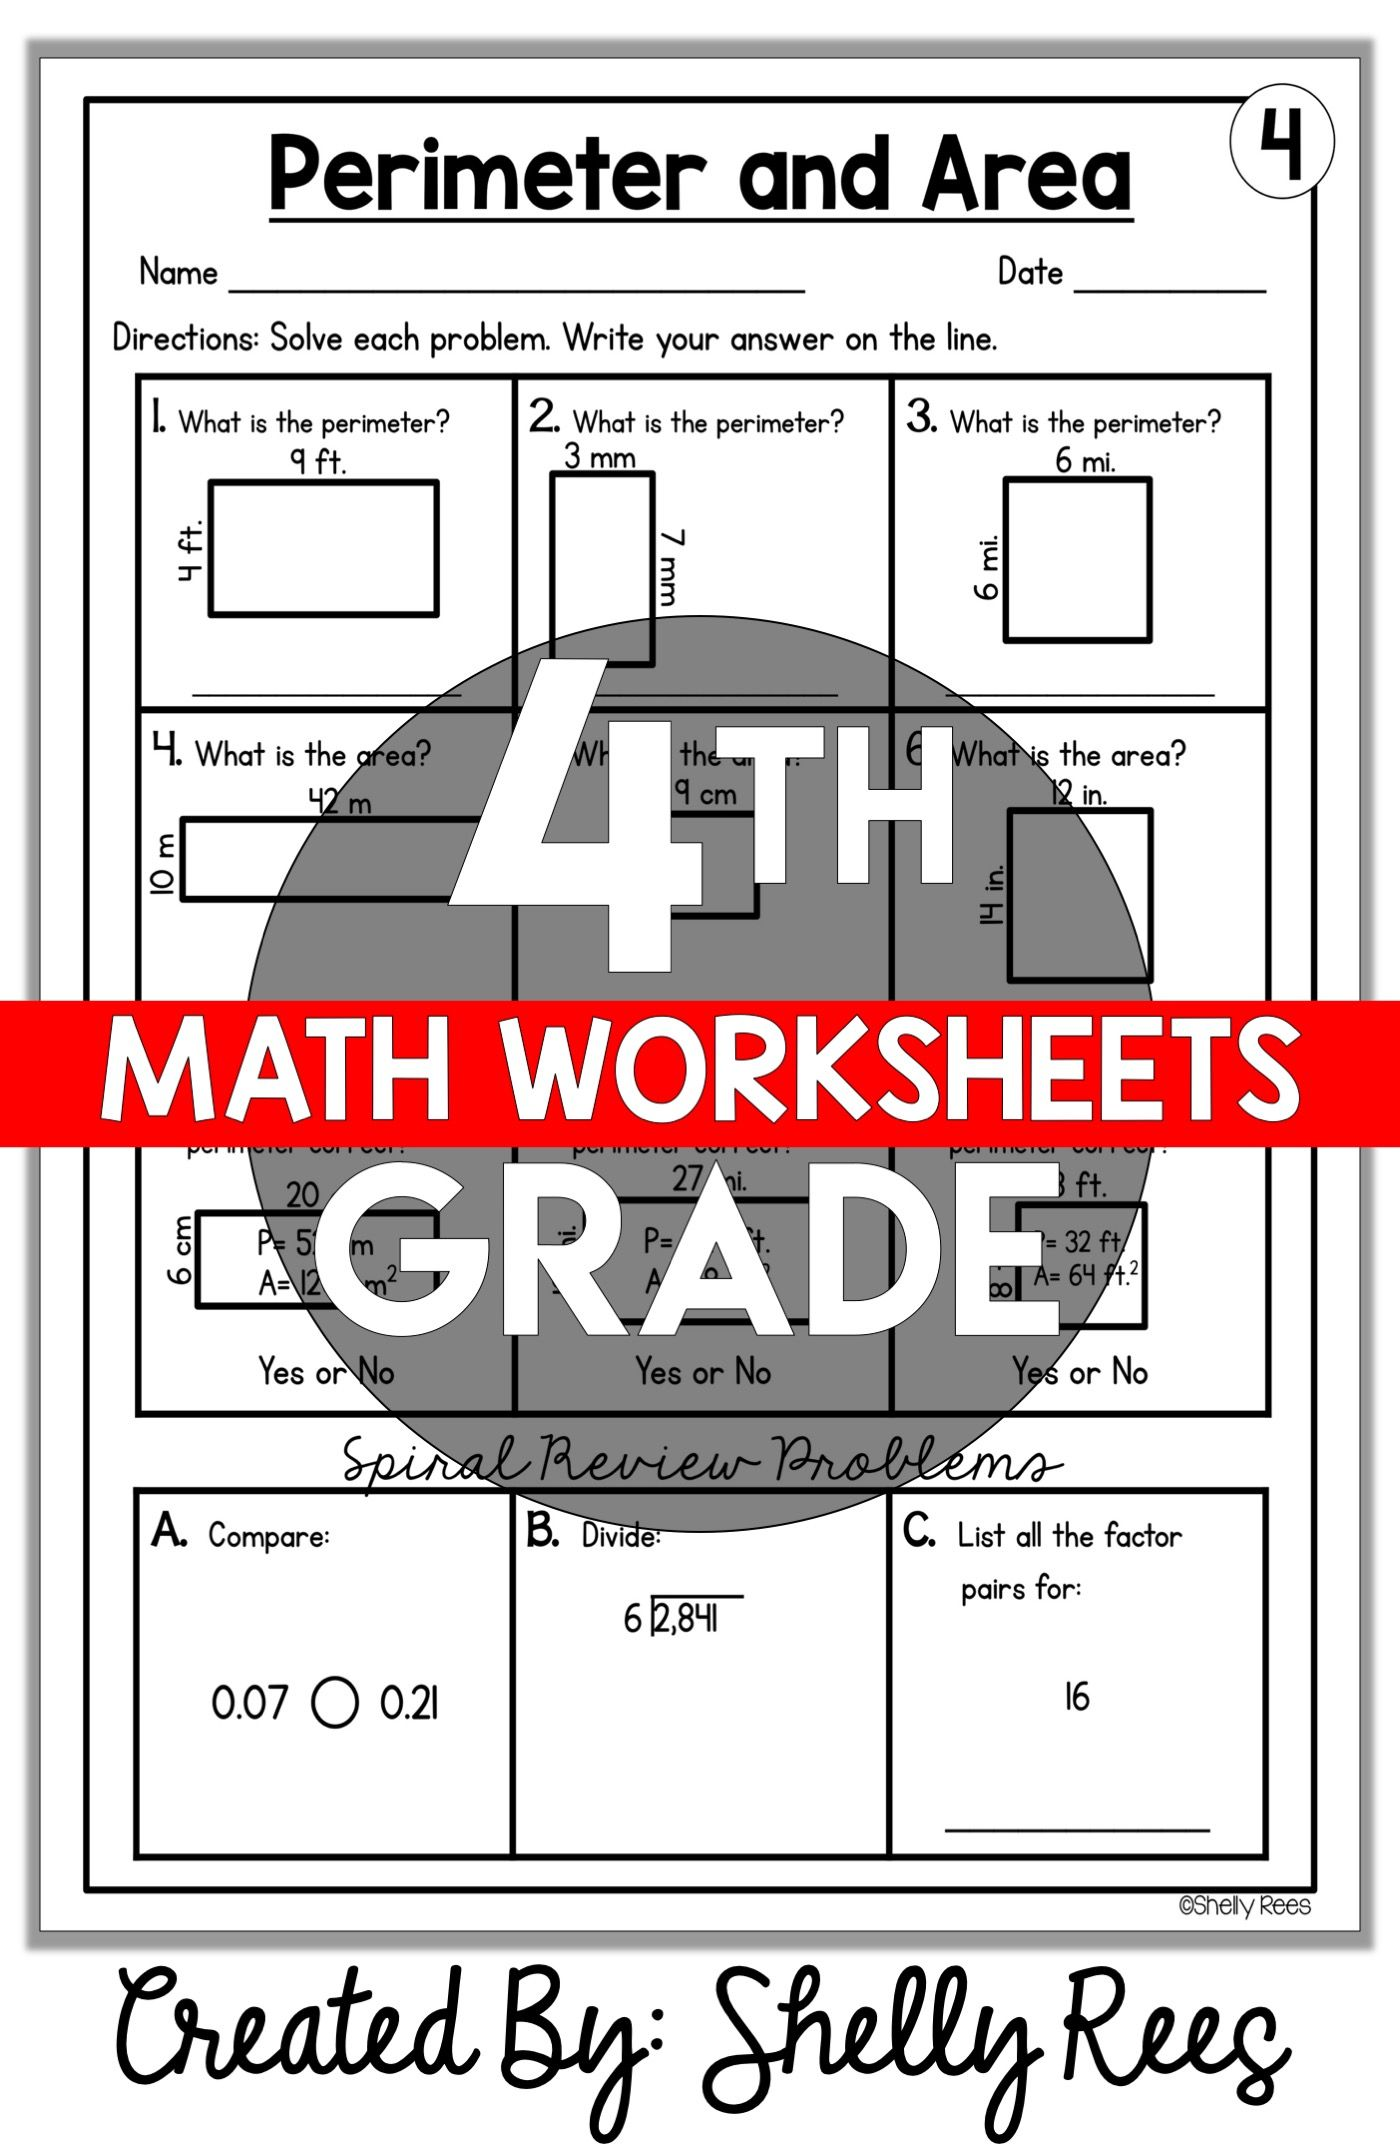 4th Grade Math Worksheets Free And Printable Appletastic Learning Math Worksheets 4th Grade Math 4th Grade Math Worksheets